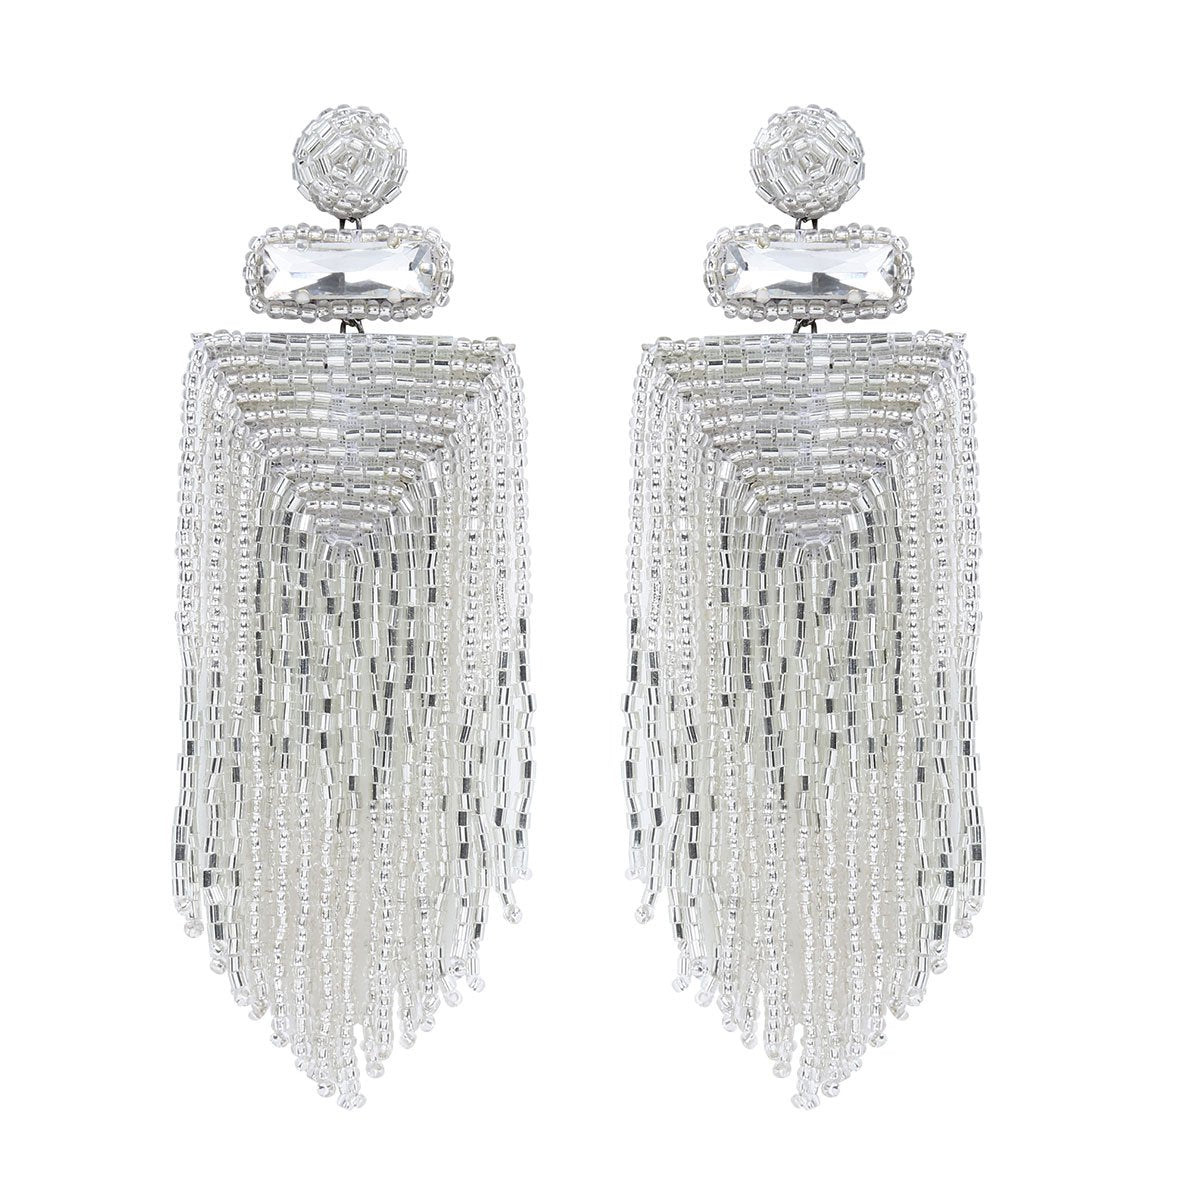 Handmade Embroidered Deepa by Deepa Gurnani Silver Jody Earrings